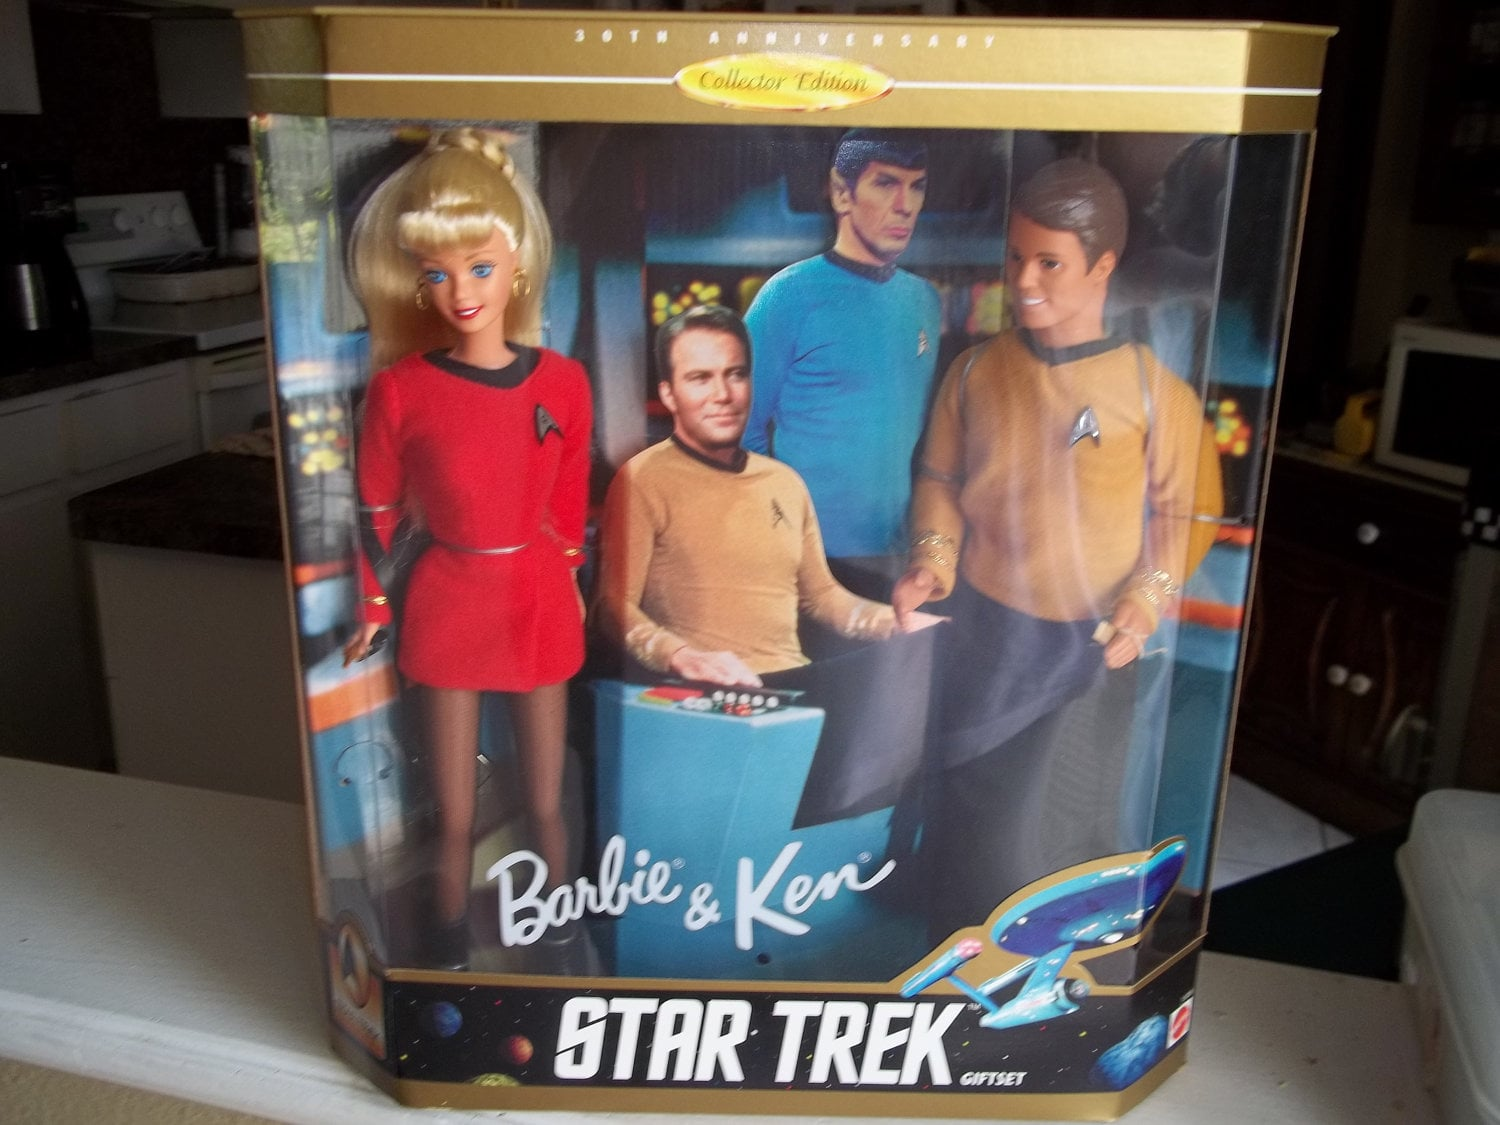 Star-Trek-Barbie-amp-Ken-35-would-make-fun-kitschy-wedding.jpeg